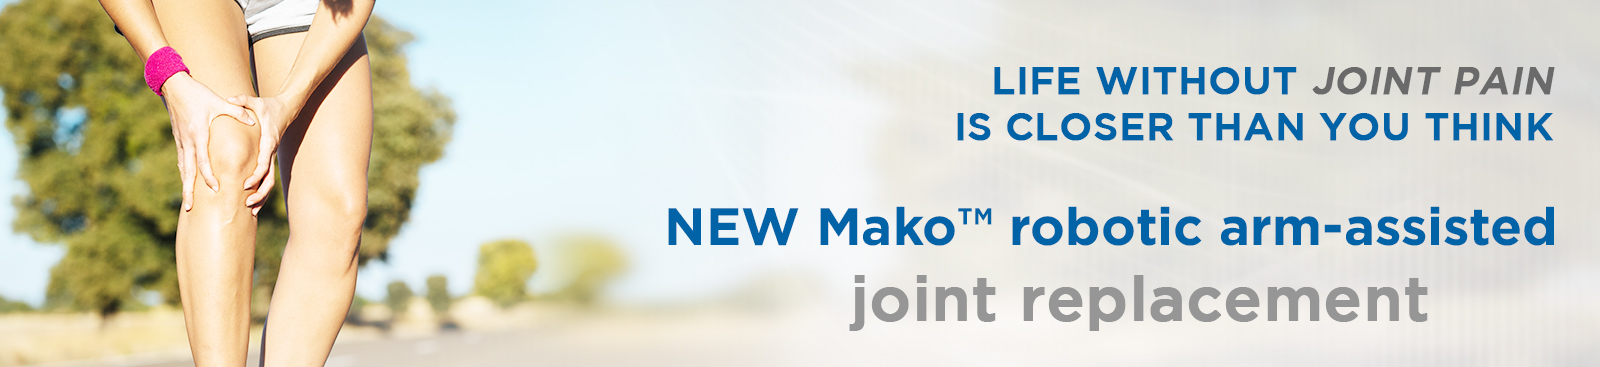 Mako Robotic Arm-assisted joint replacement